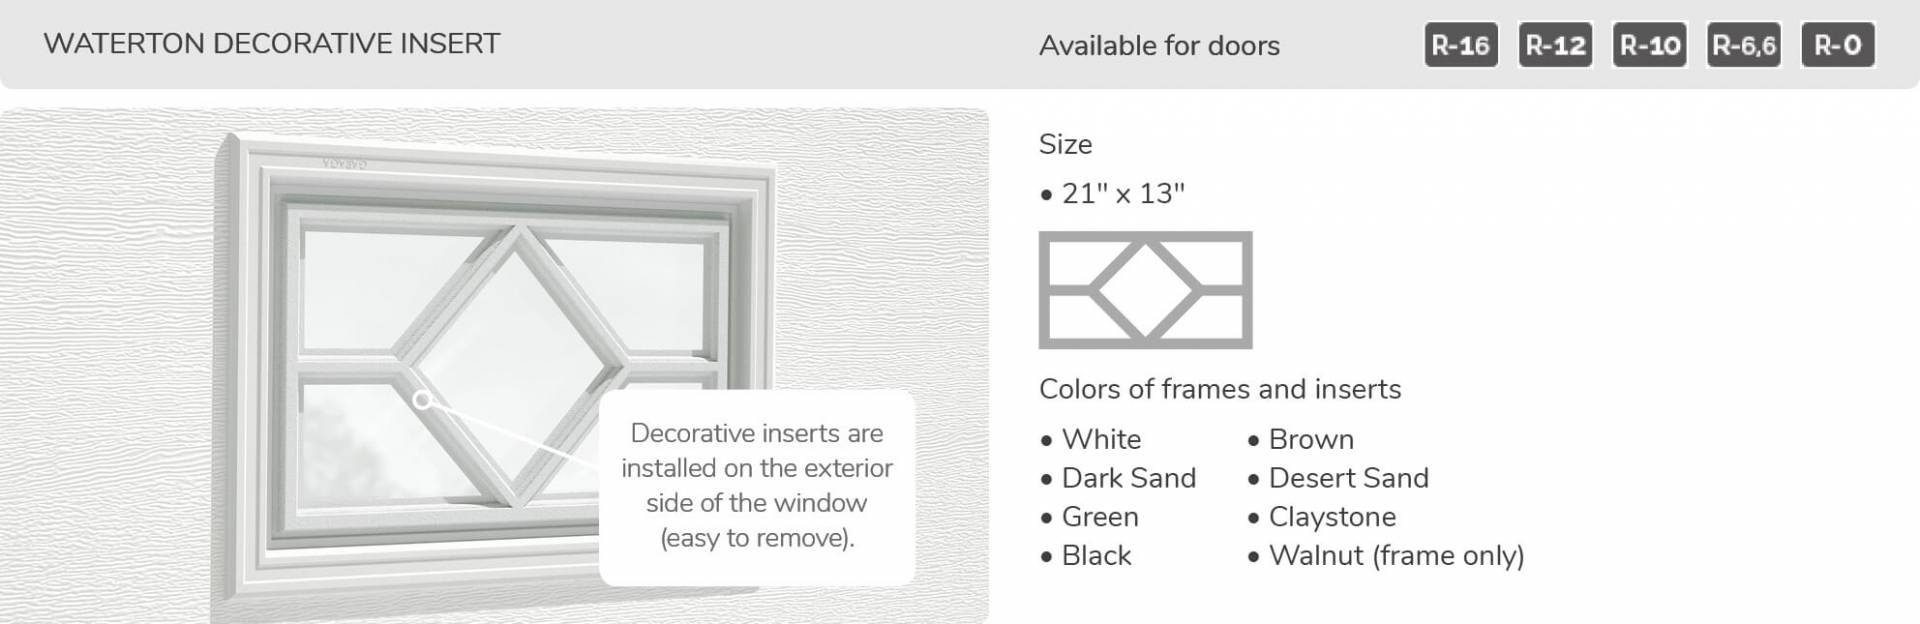 Waterton Decorative Inserts, 21' x 13', available for doors R-16, R-12, R-10, R-6,6 and R-0